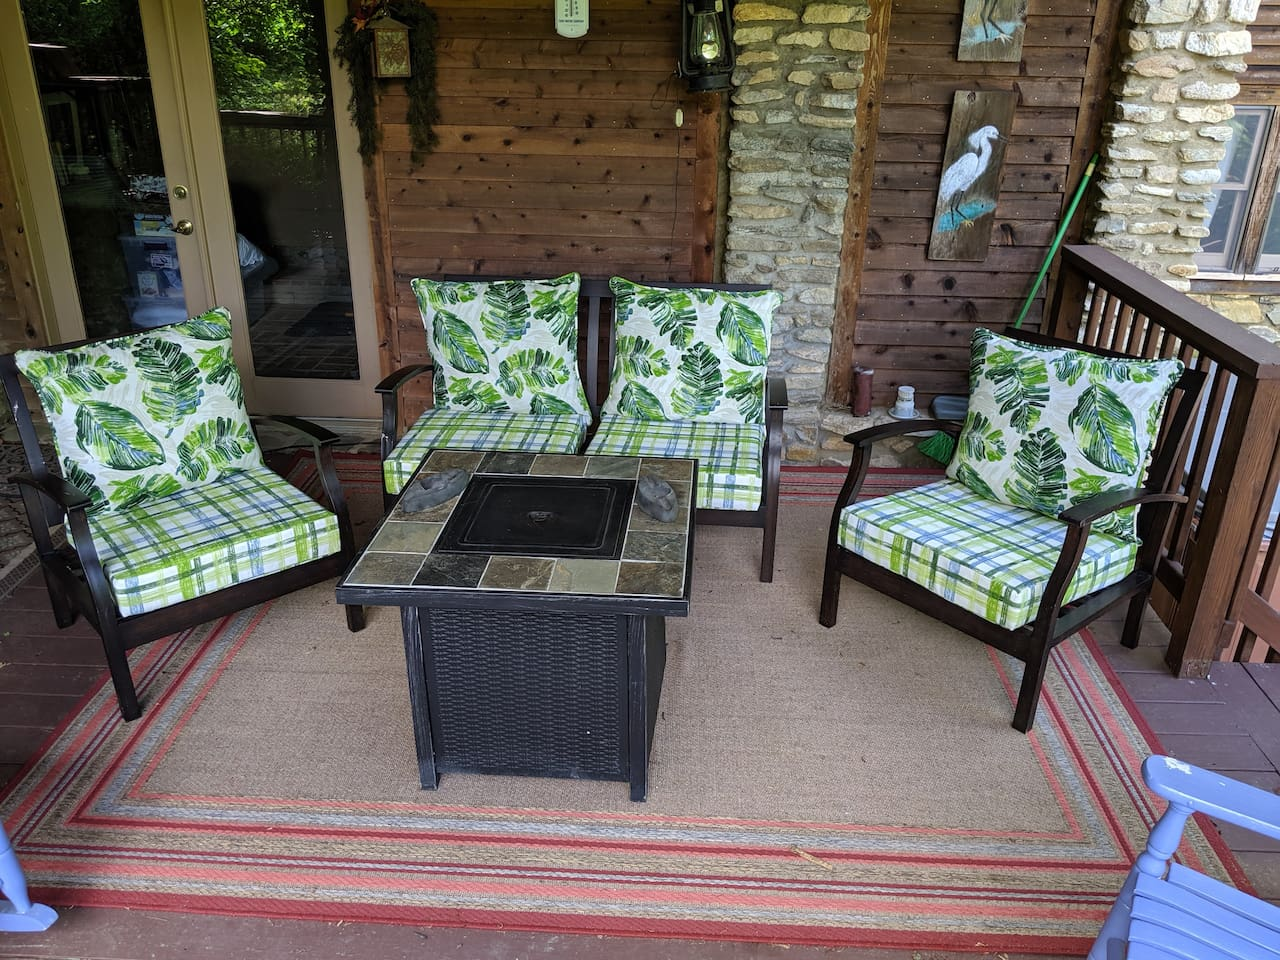 Gas fire pit and comfy patio chairs for relaxing outside and out of the weather